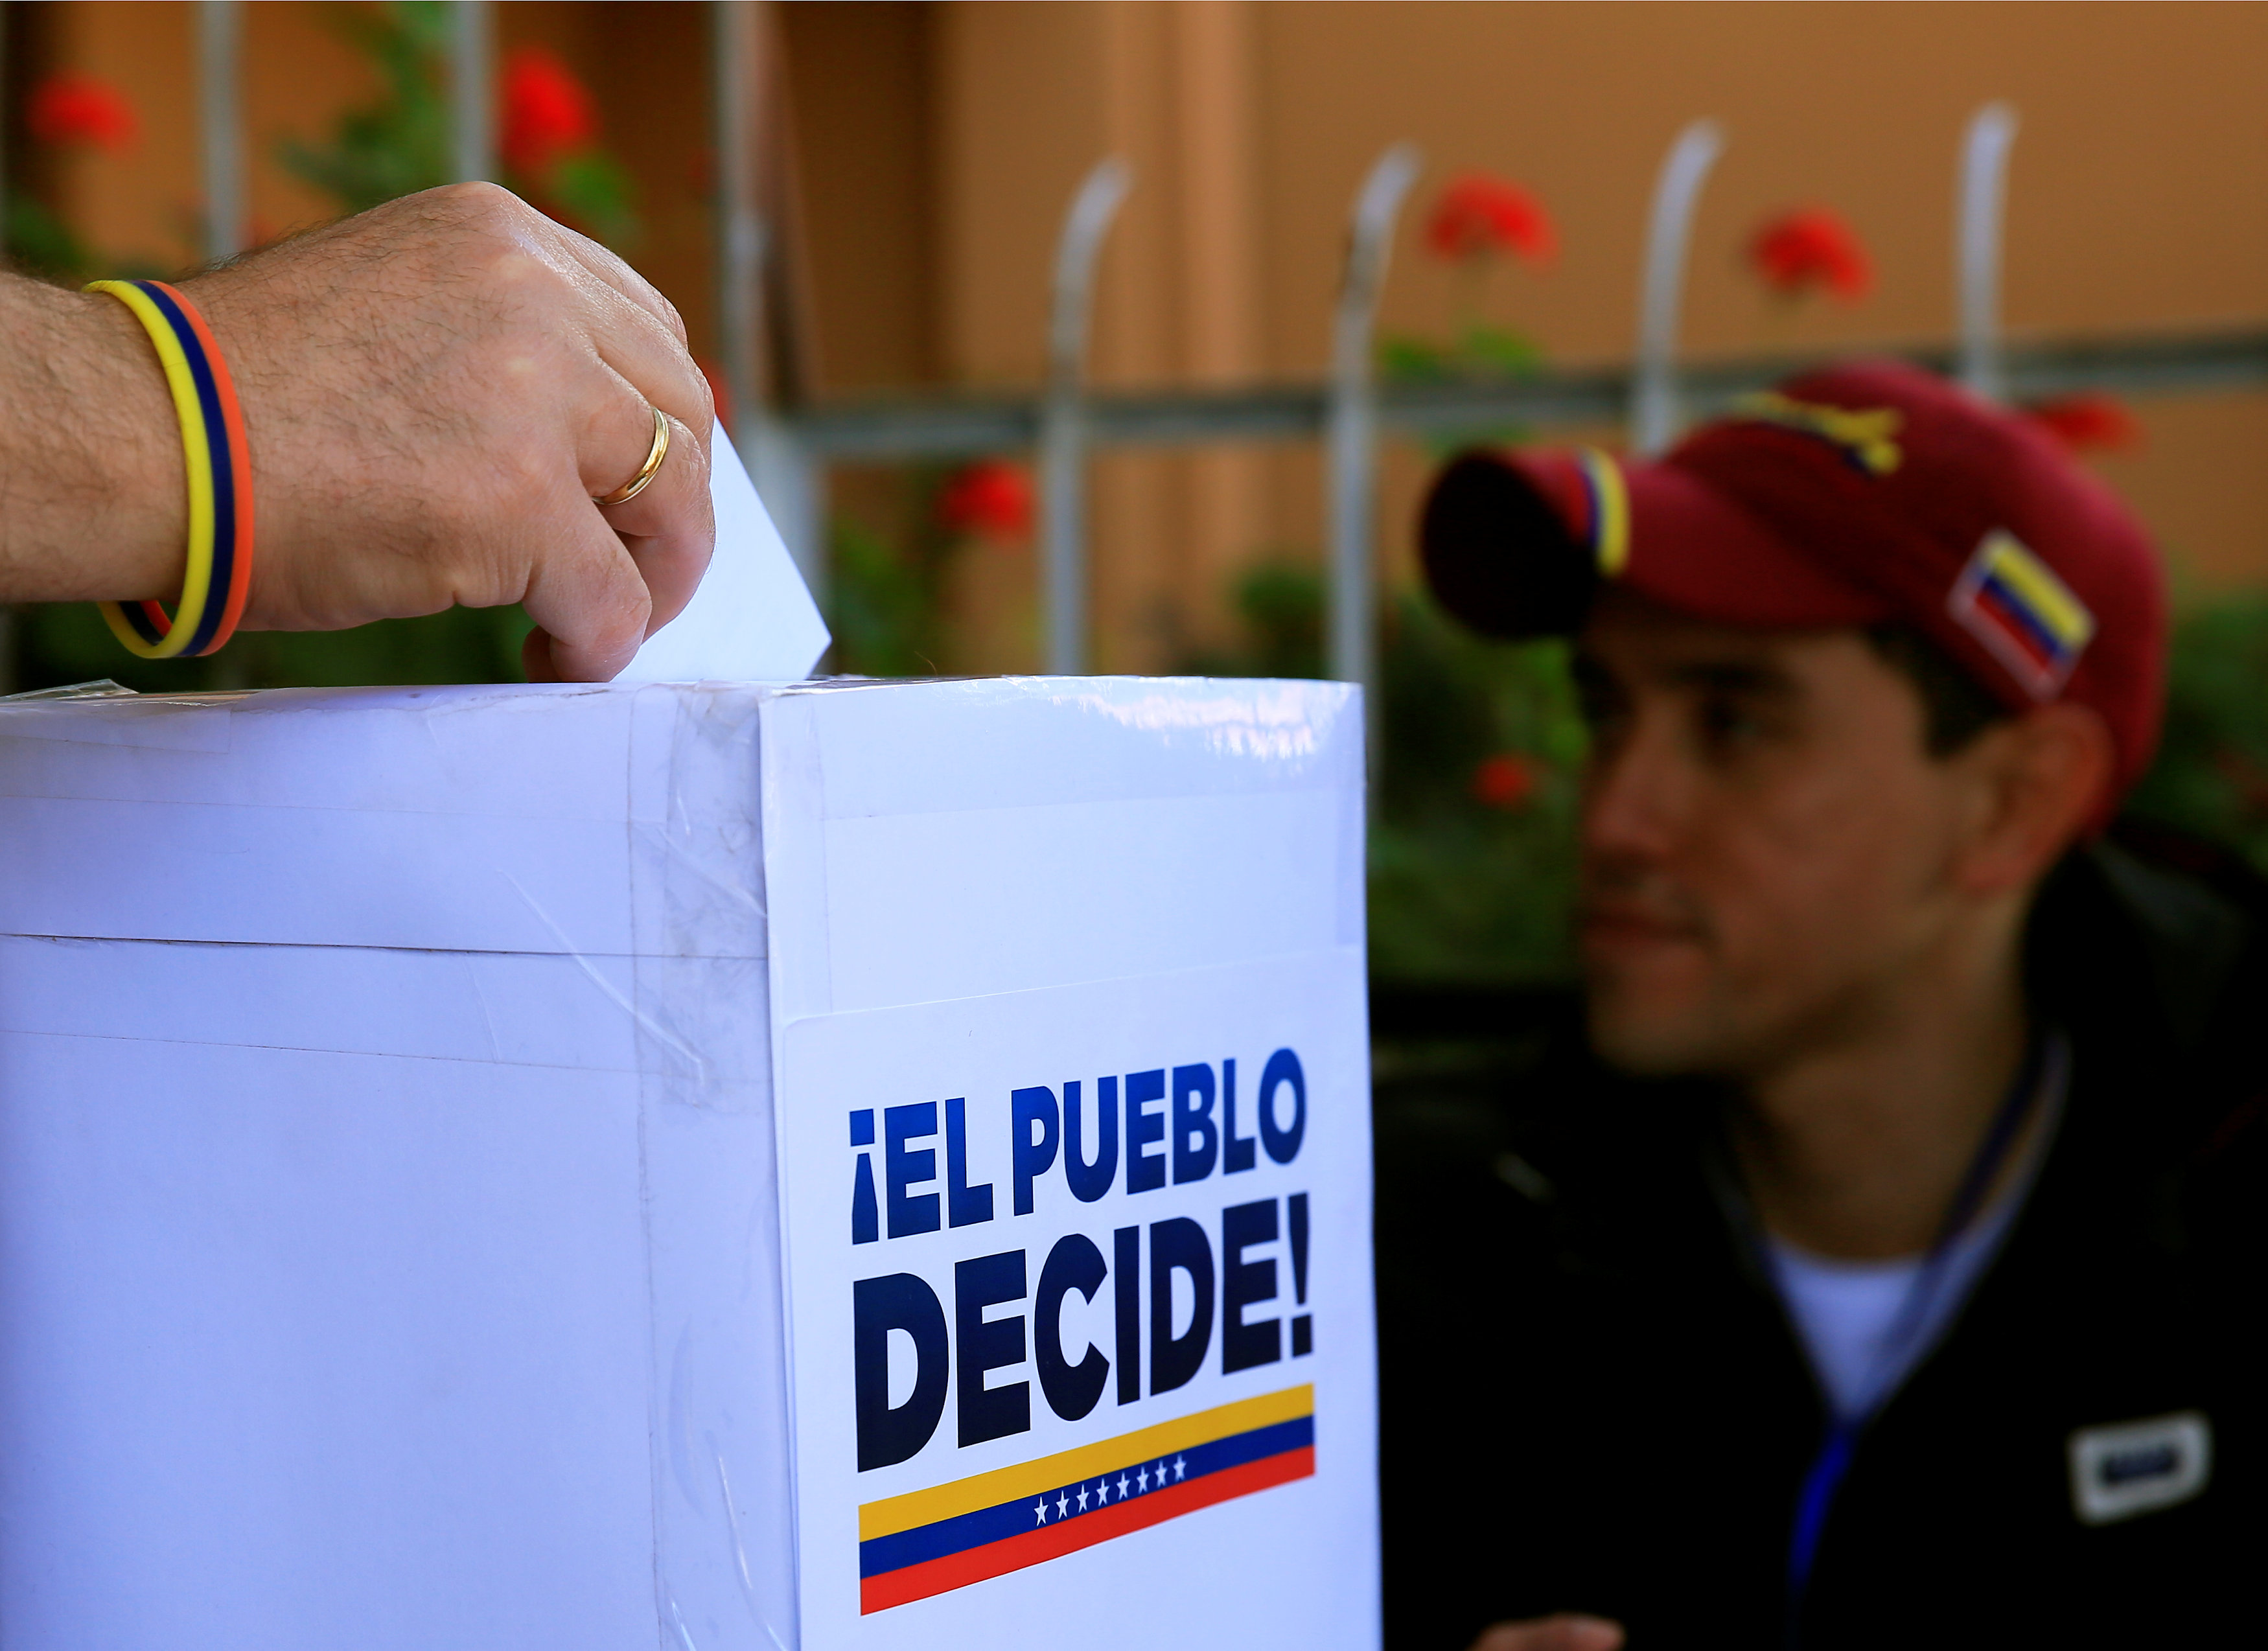 A man votes during an unofficial plebiscite against Venezuela's President Nicolas Maduro's government, in La Paz, Bolivia, July 16, 2017. REUTERS/David Mercado